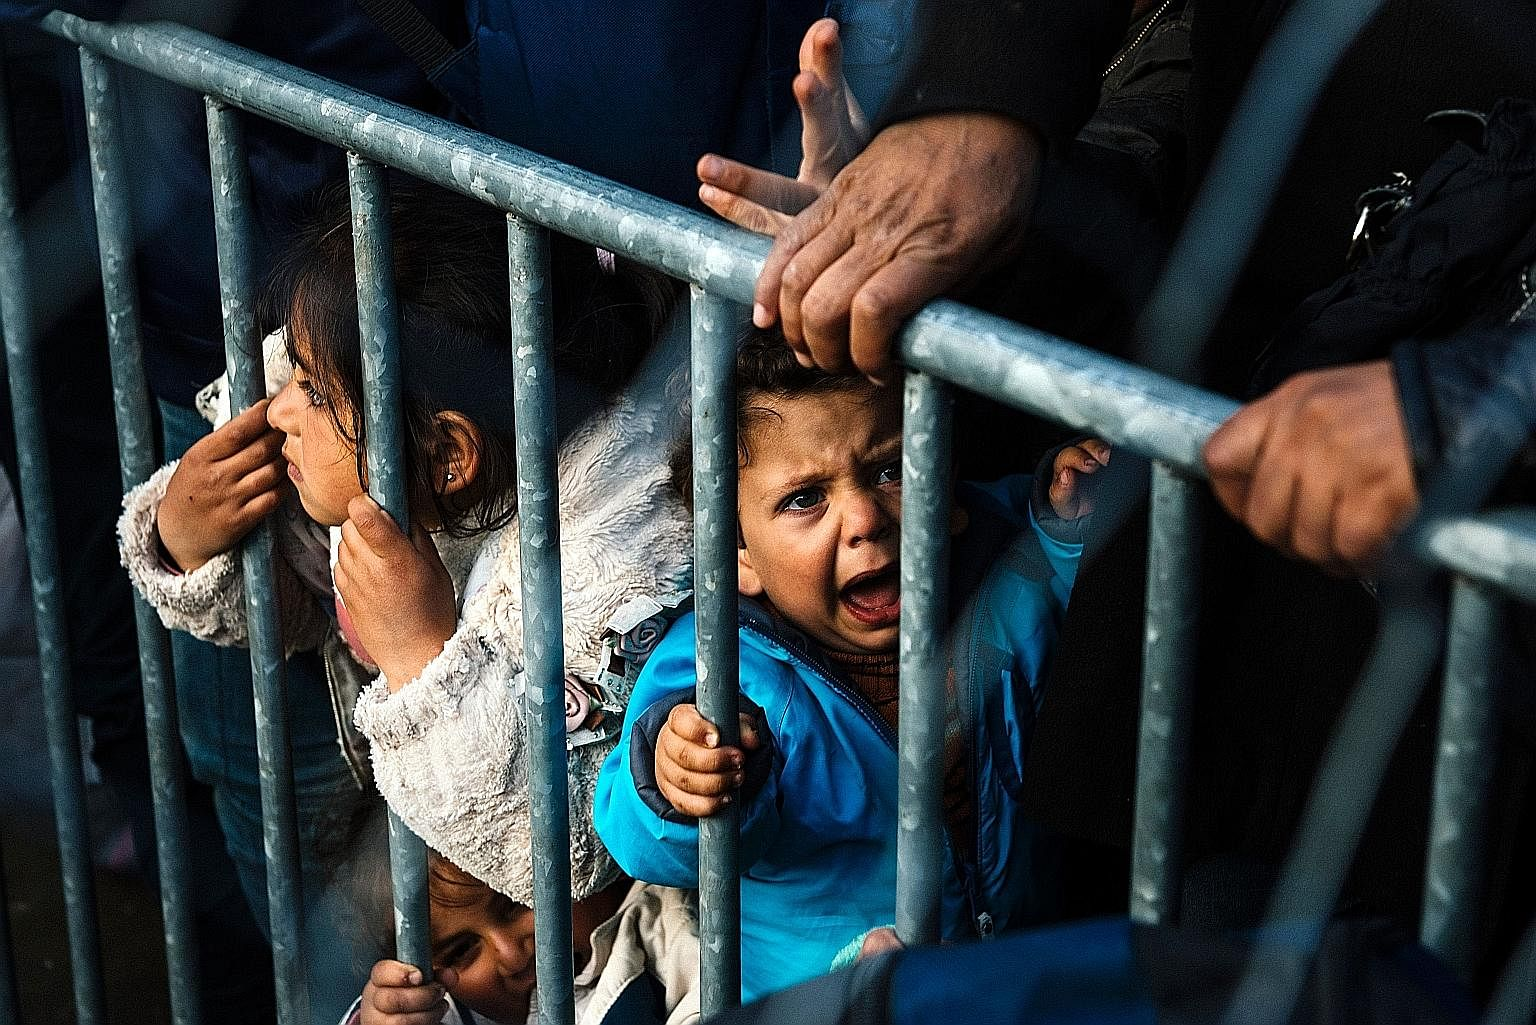 In Greece, which borders Turkey, over 30,000 refugees are already stranded as tighter border controls are now erected throughout Europe. A proposed deal is for Turkey to help control the flow of migrants into Europe, while the latter offers it up to